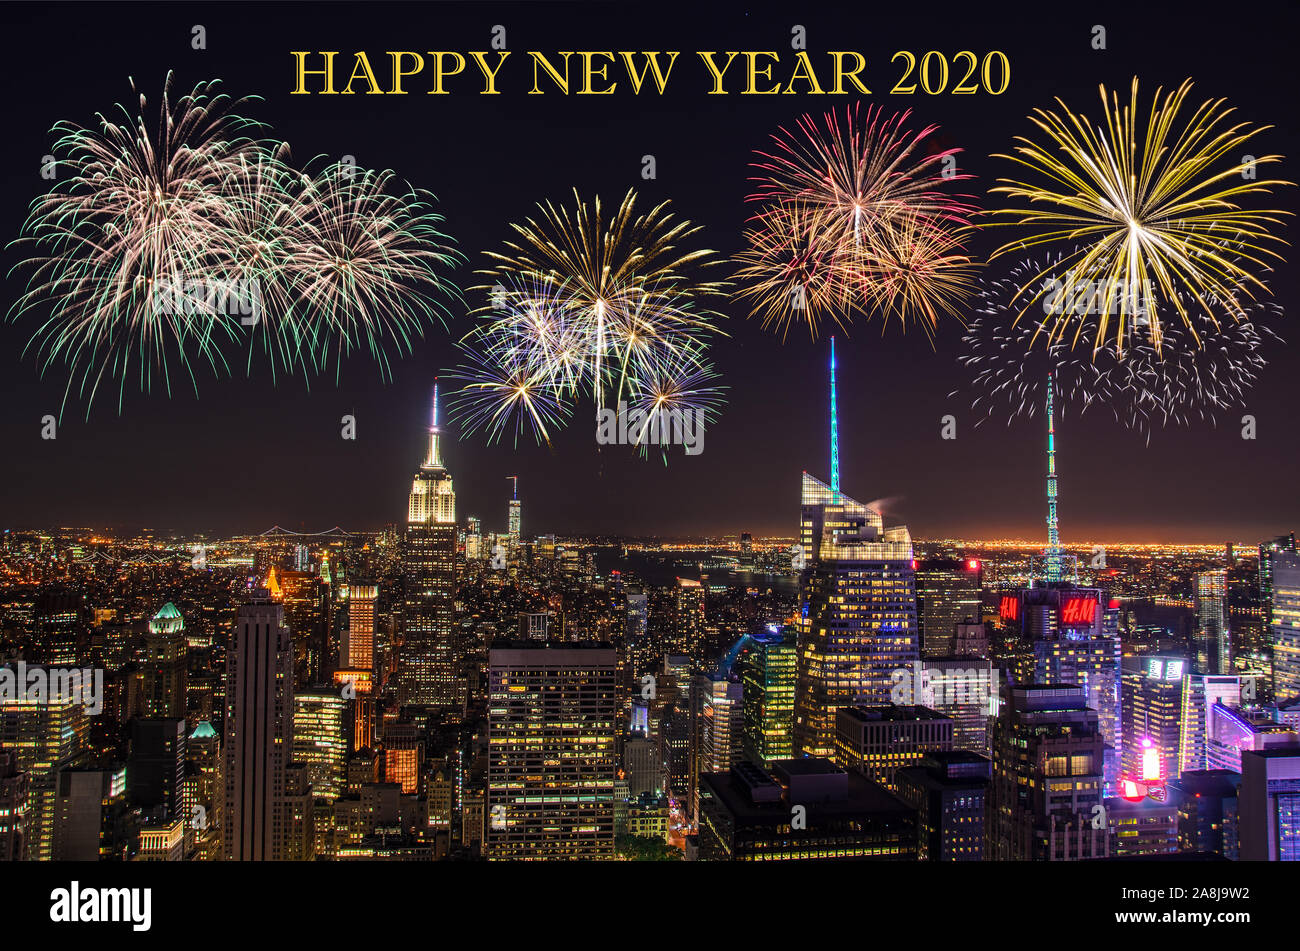 New year's eve and fireworks over New york city Stock Photo